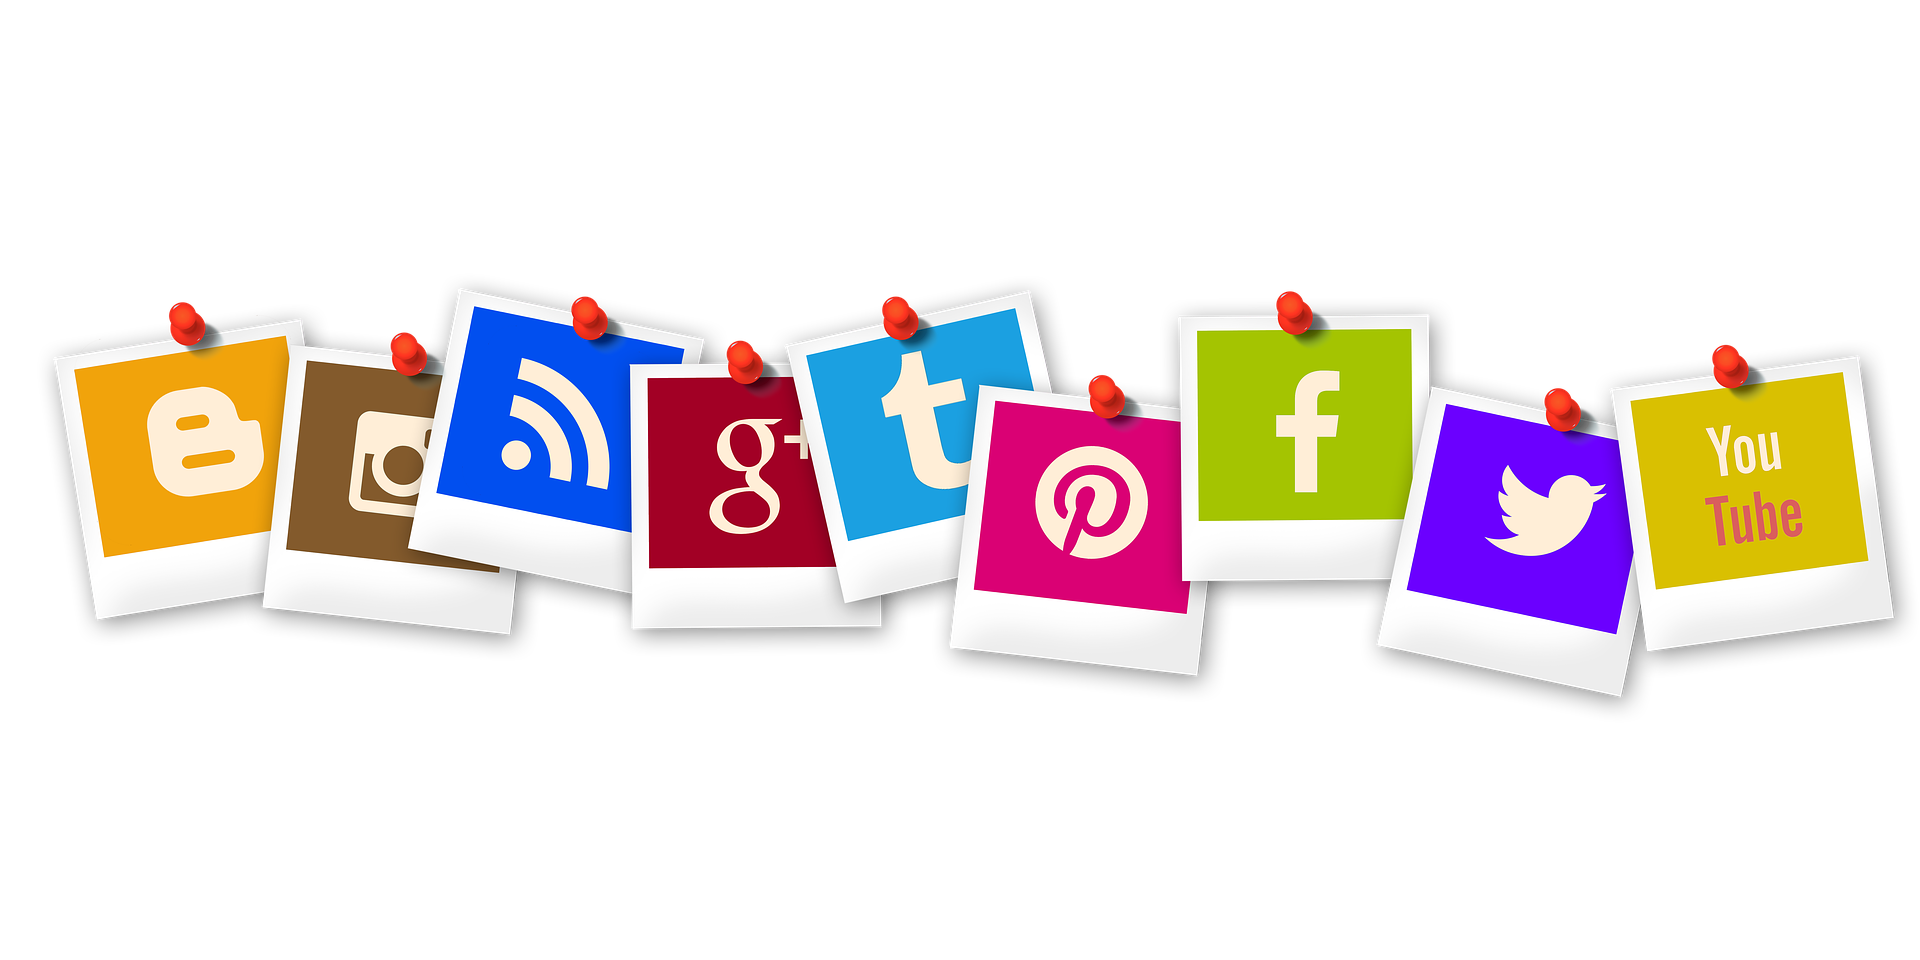 social-media-icons-social-media-marketing-trends-online